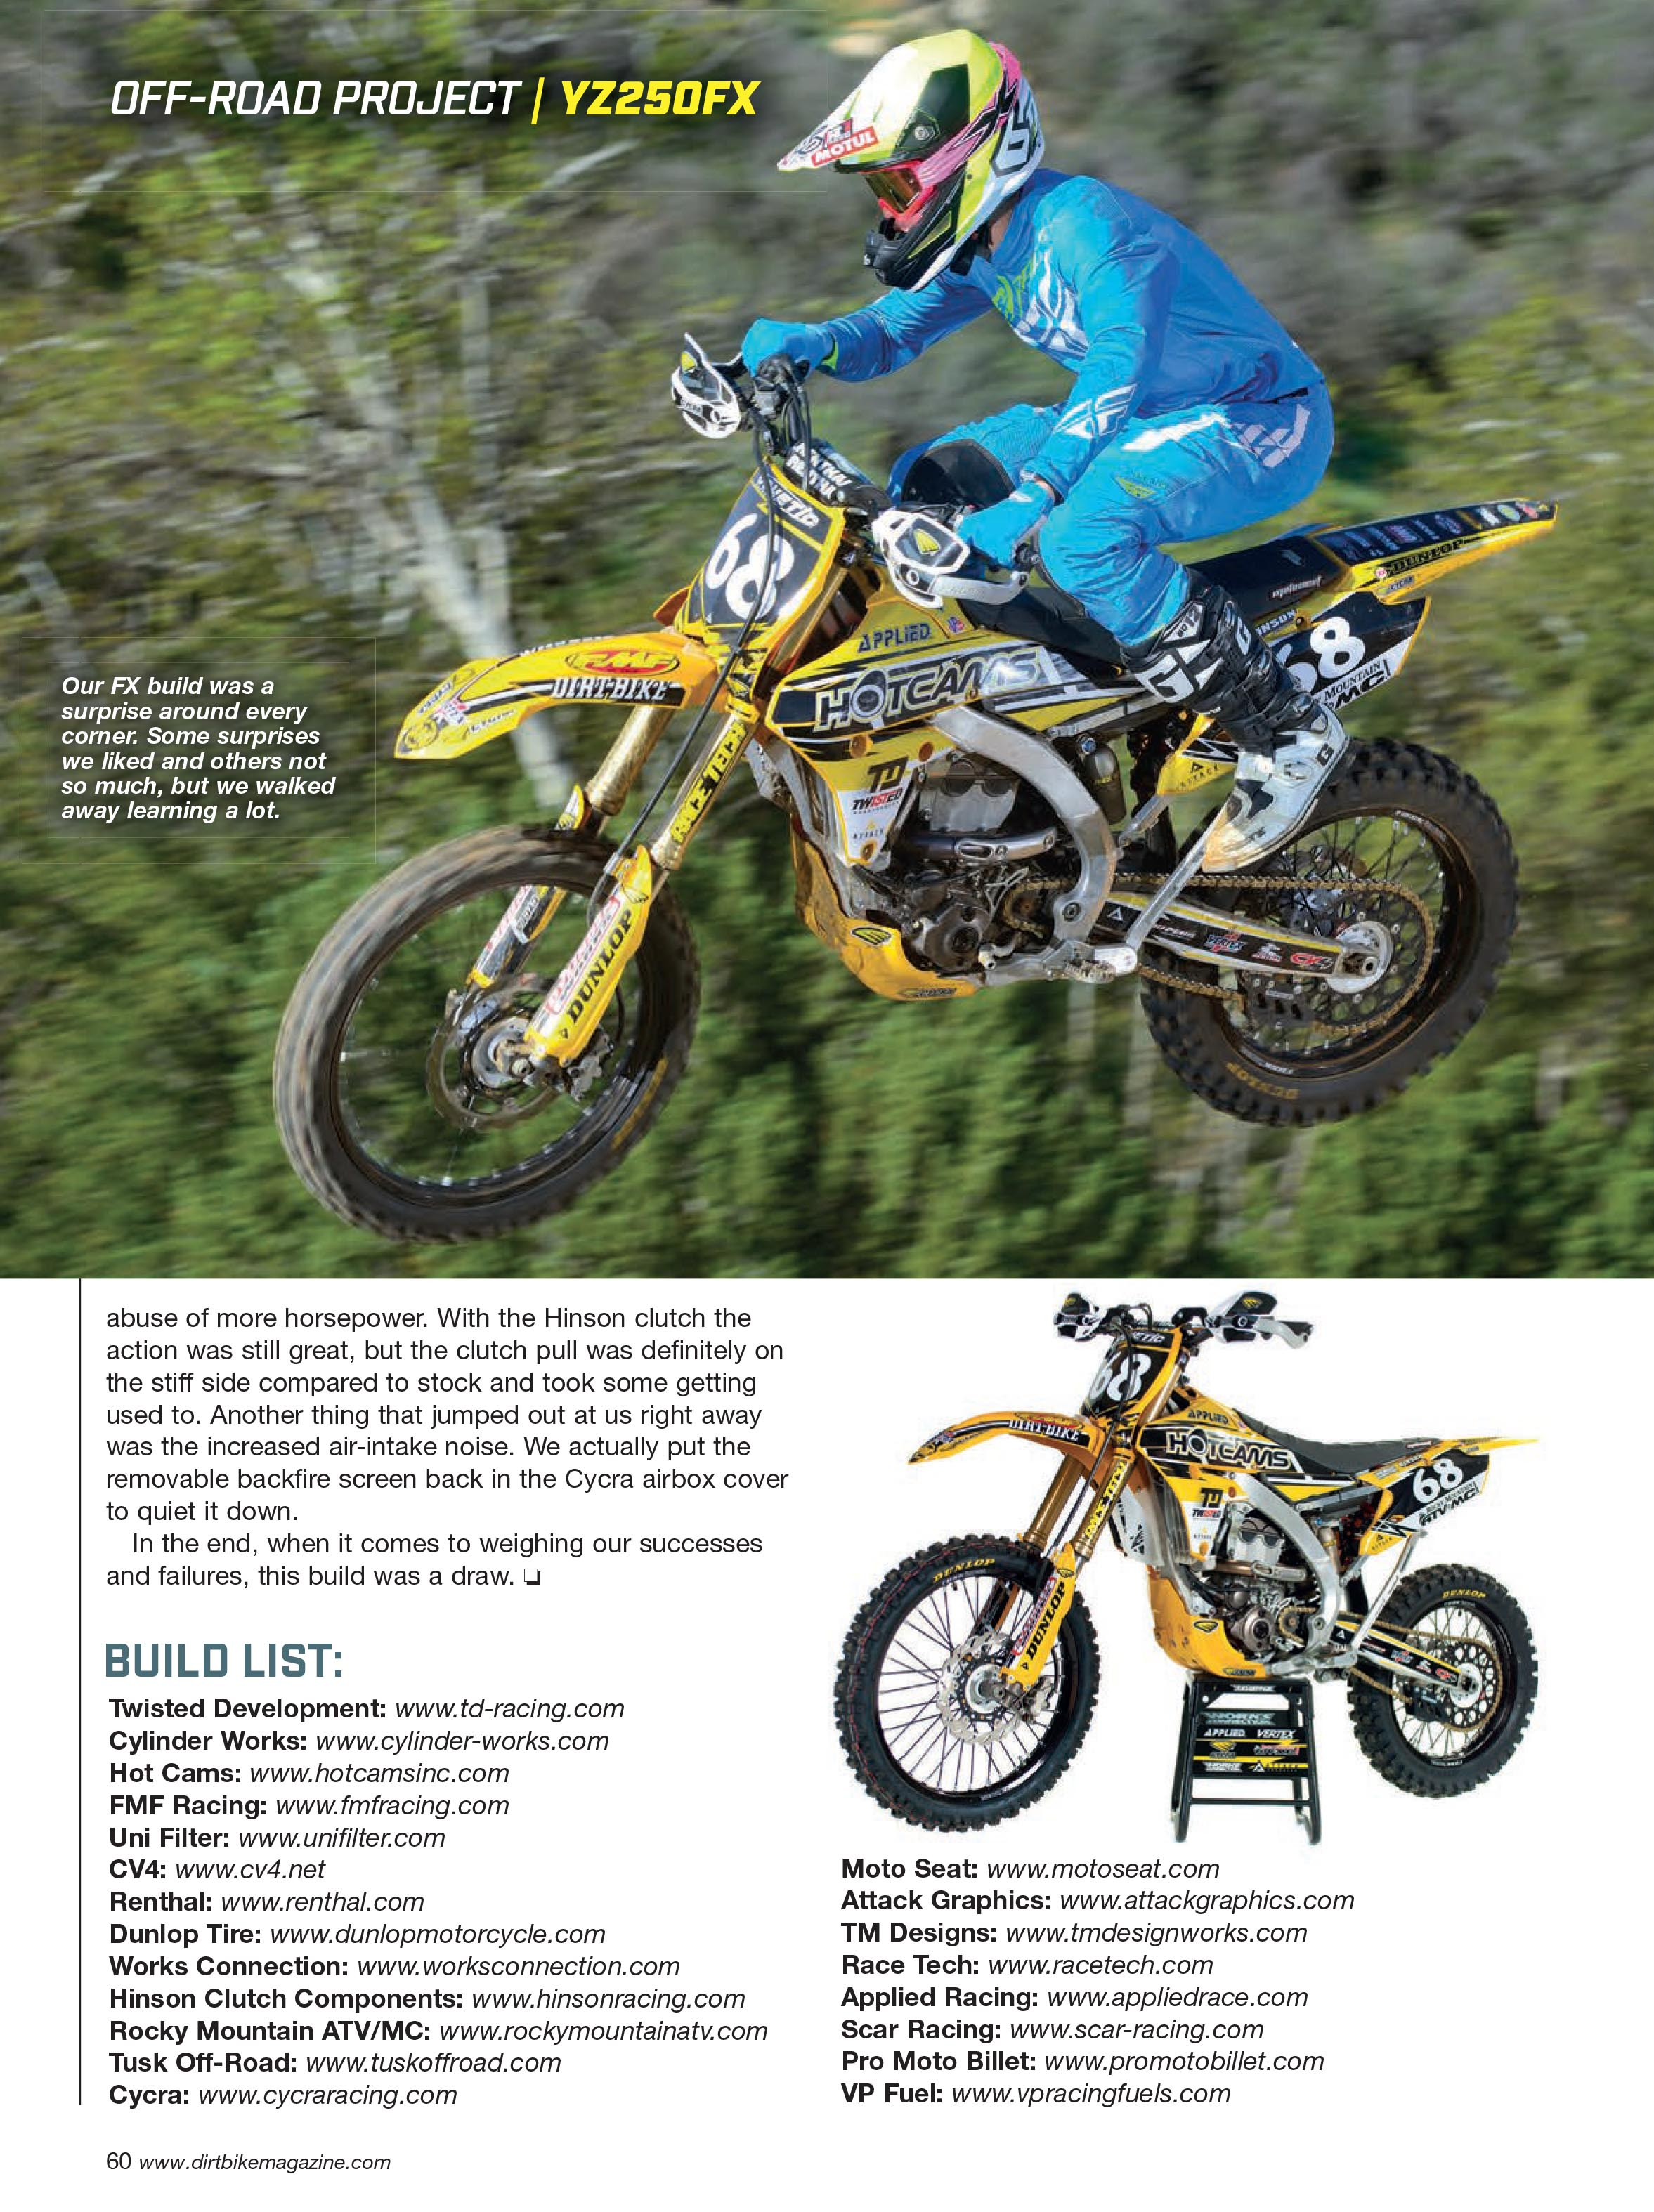 NEW-Hop-up-yz250 p54-60.indd